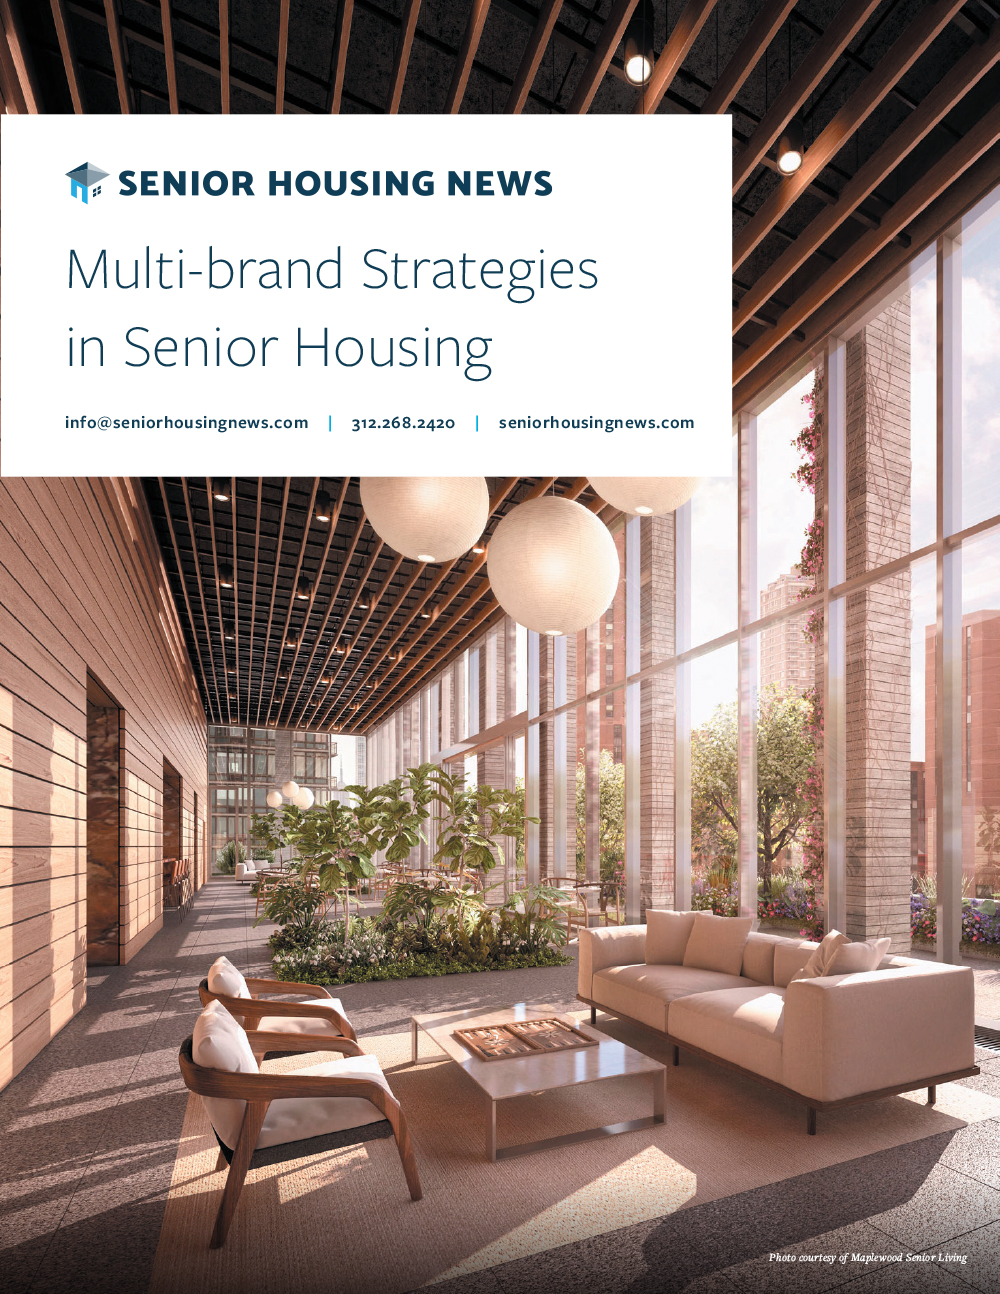 Multi-brand Strategies in Senior Housing